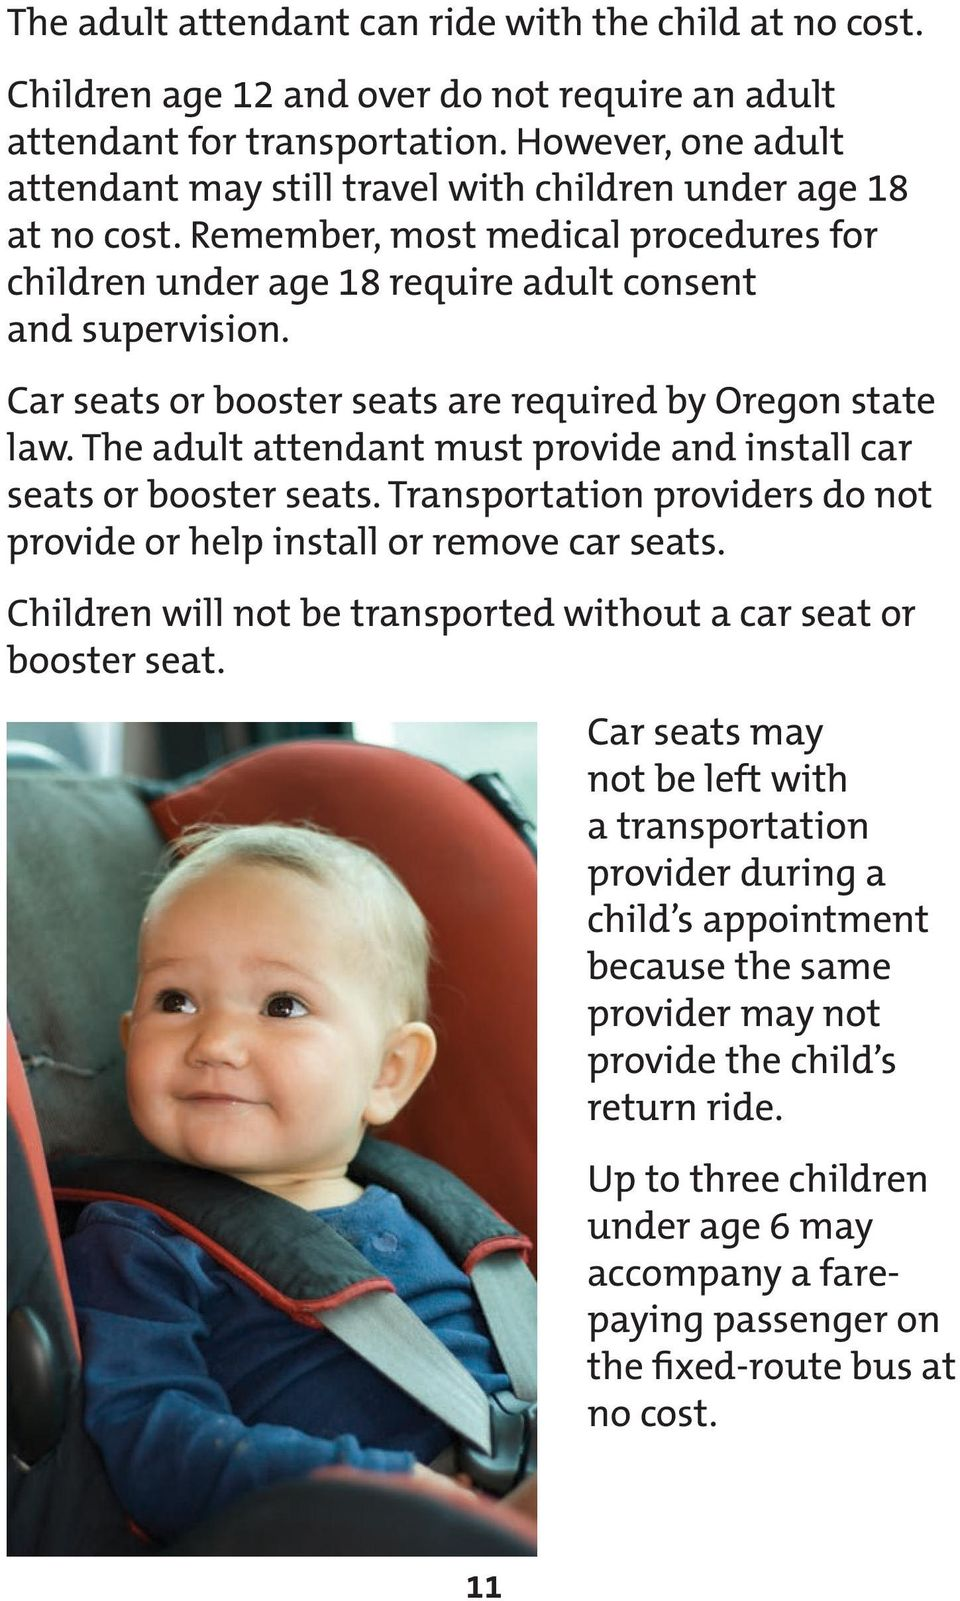 Car seats or booster seats are required by Oregon state law. The adult attendant must provide and install car seats or booster seats.